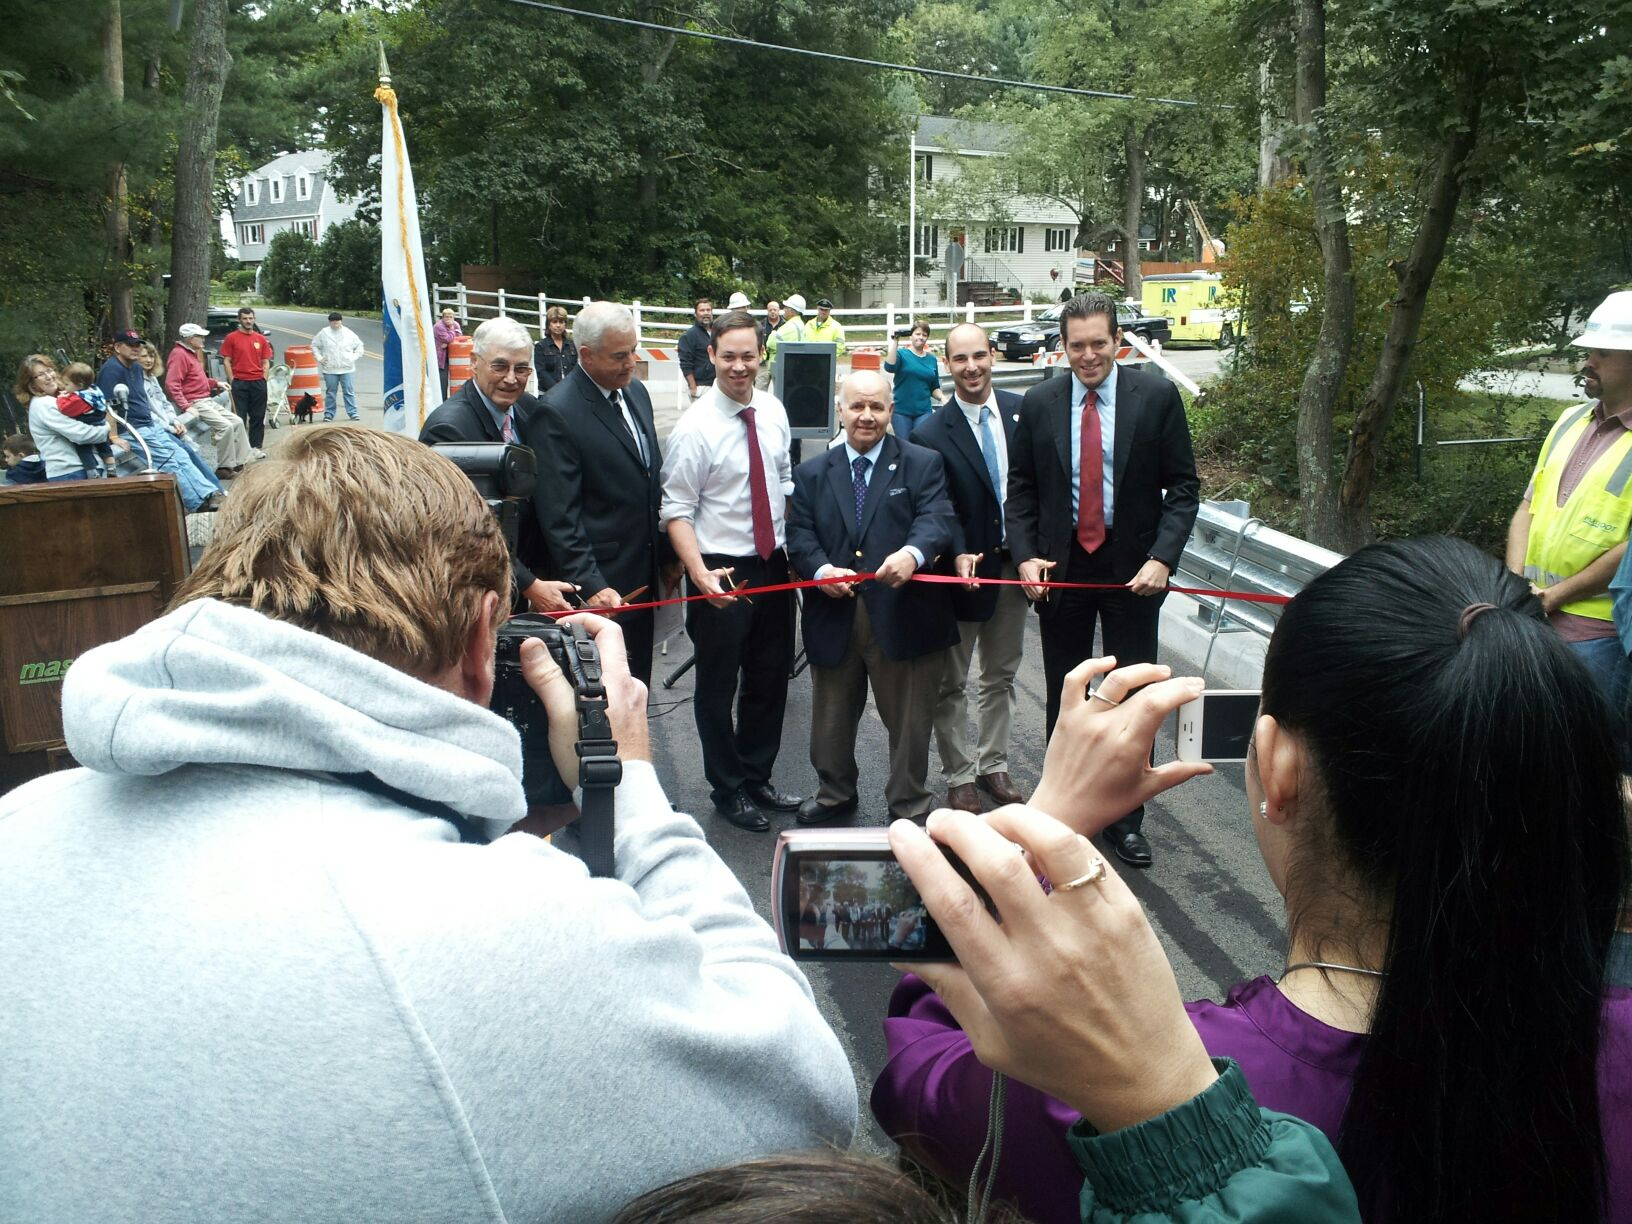 Featured in the photo are, from left, Tewksbury Selectman Doug Sears, MassDOT Highway Administrator Frank DePaola, state Reps. Paul Adams of Andover, Jim Miceli of Wilmington and Marc Lombardo of Billerica, and state Sen. Barry Finegold of Andover.